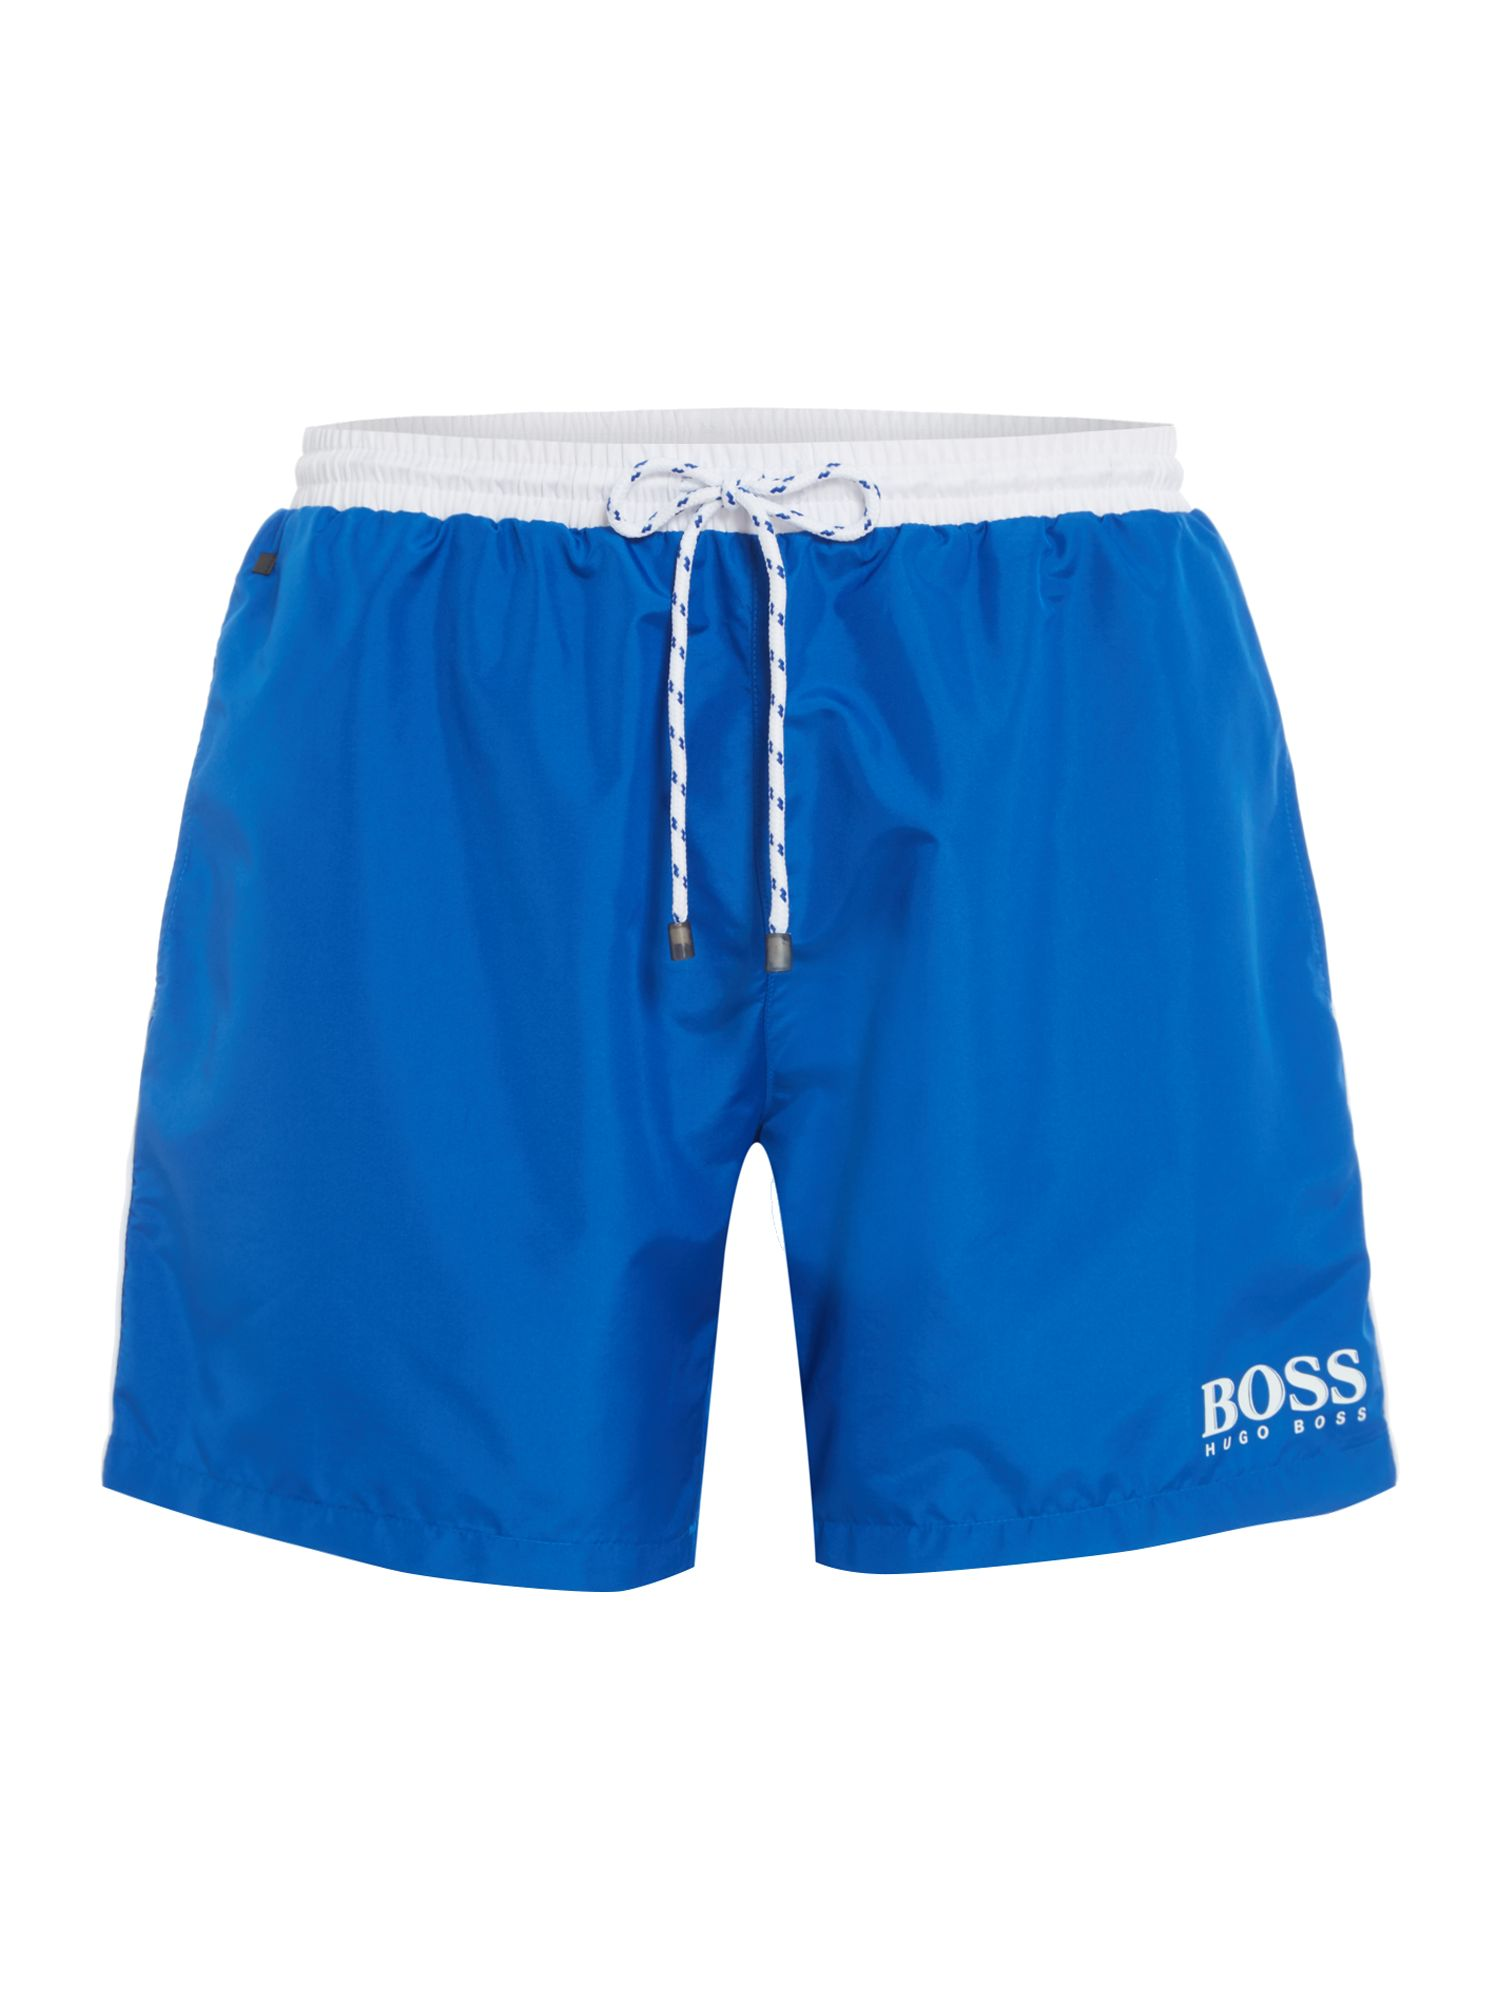 Men's Hugo Boss Starfish Swim Shorts, Light Blue